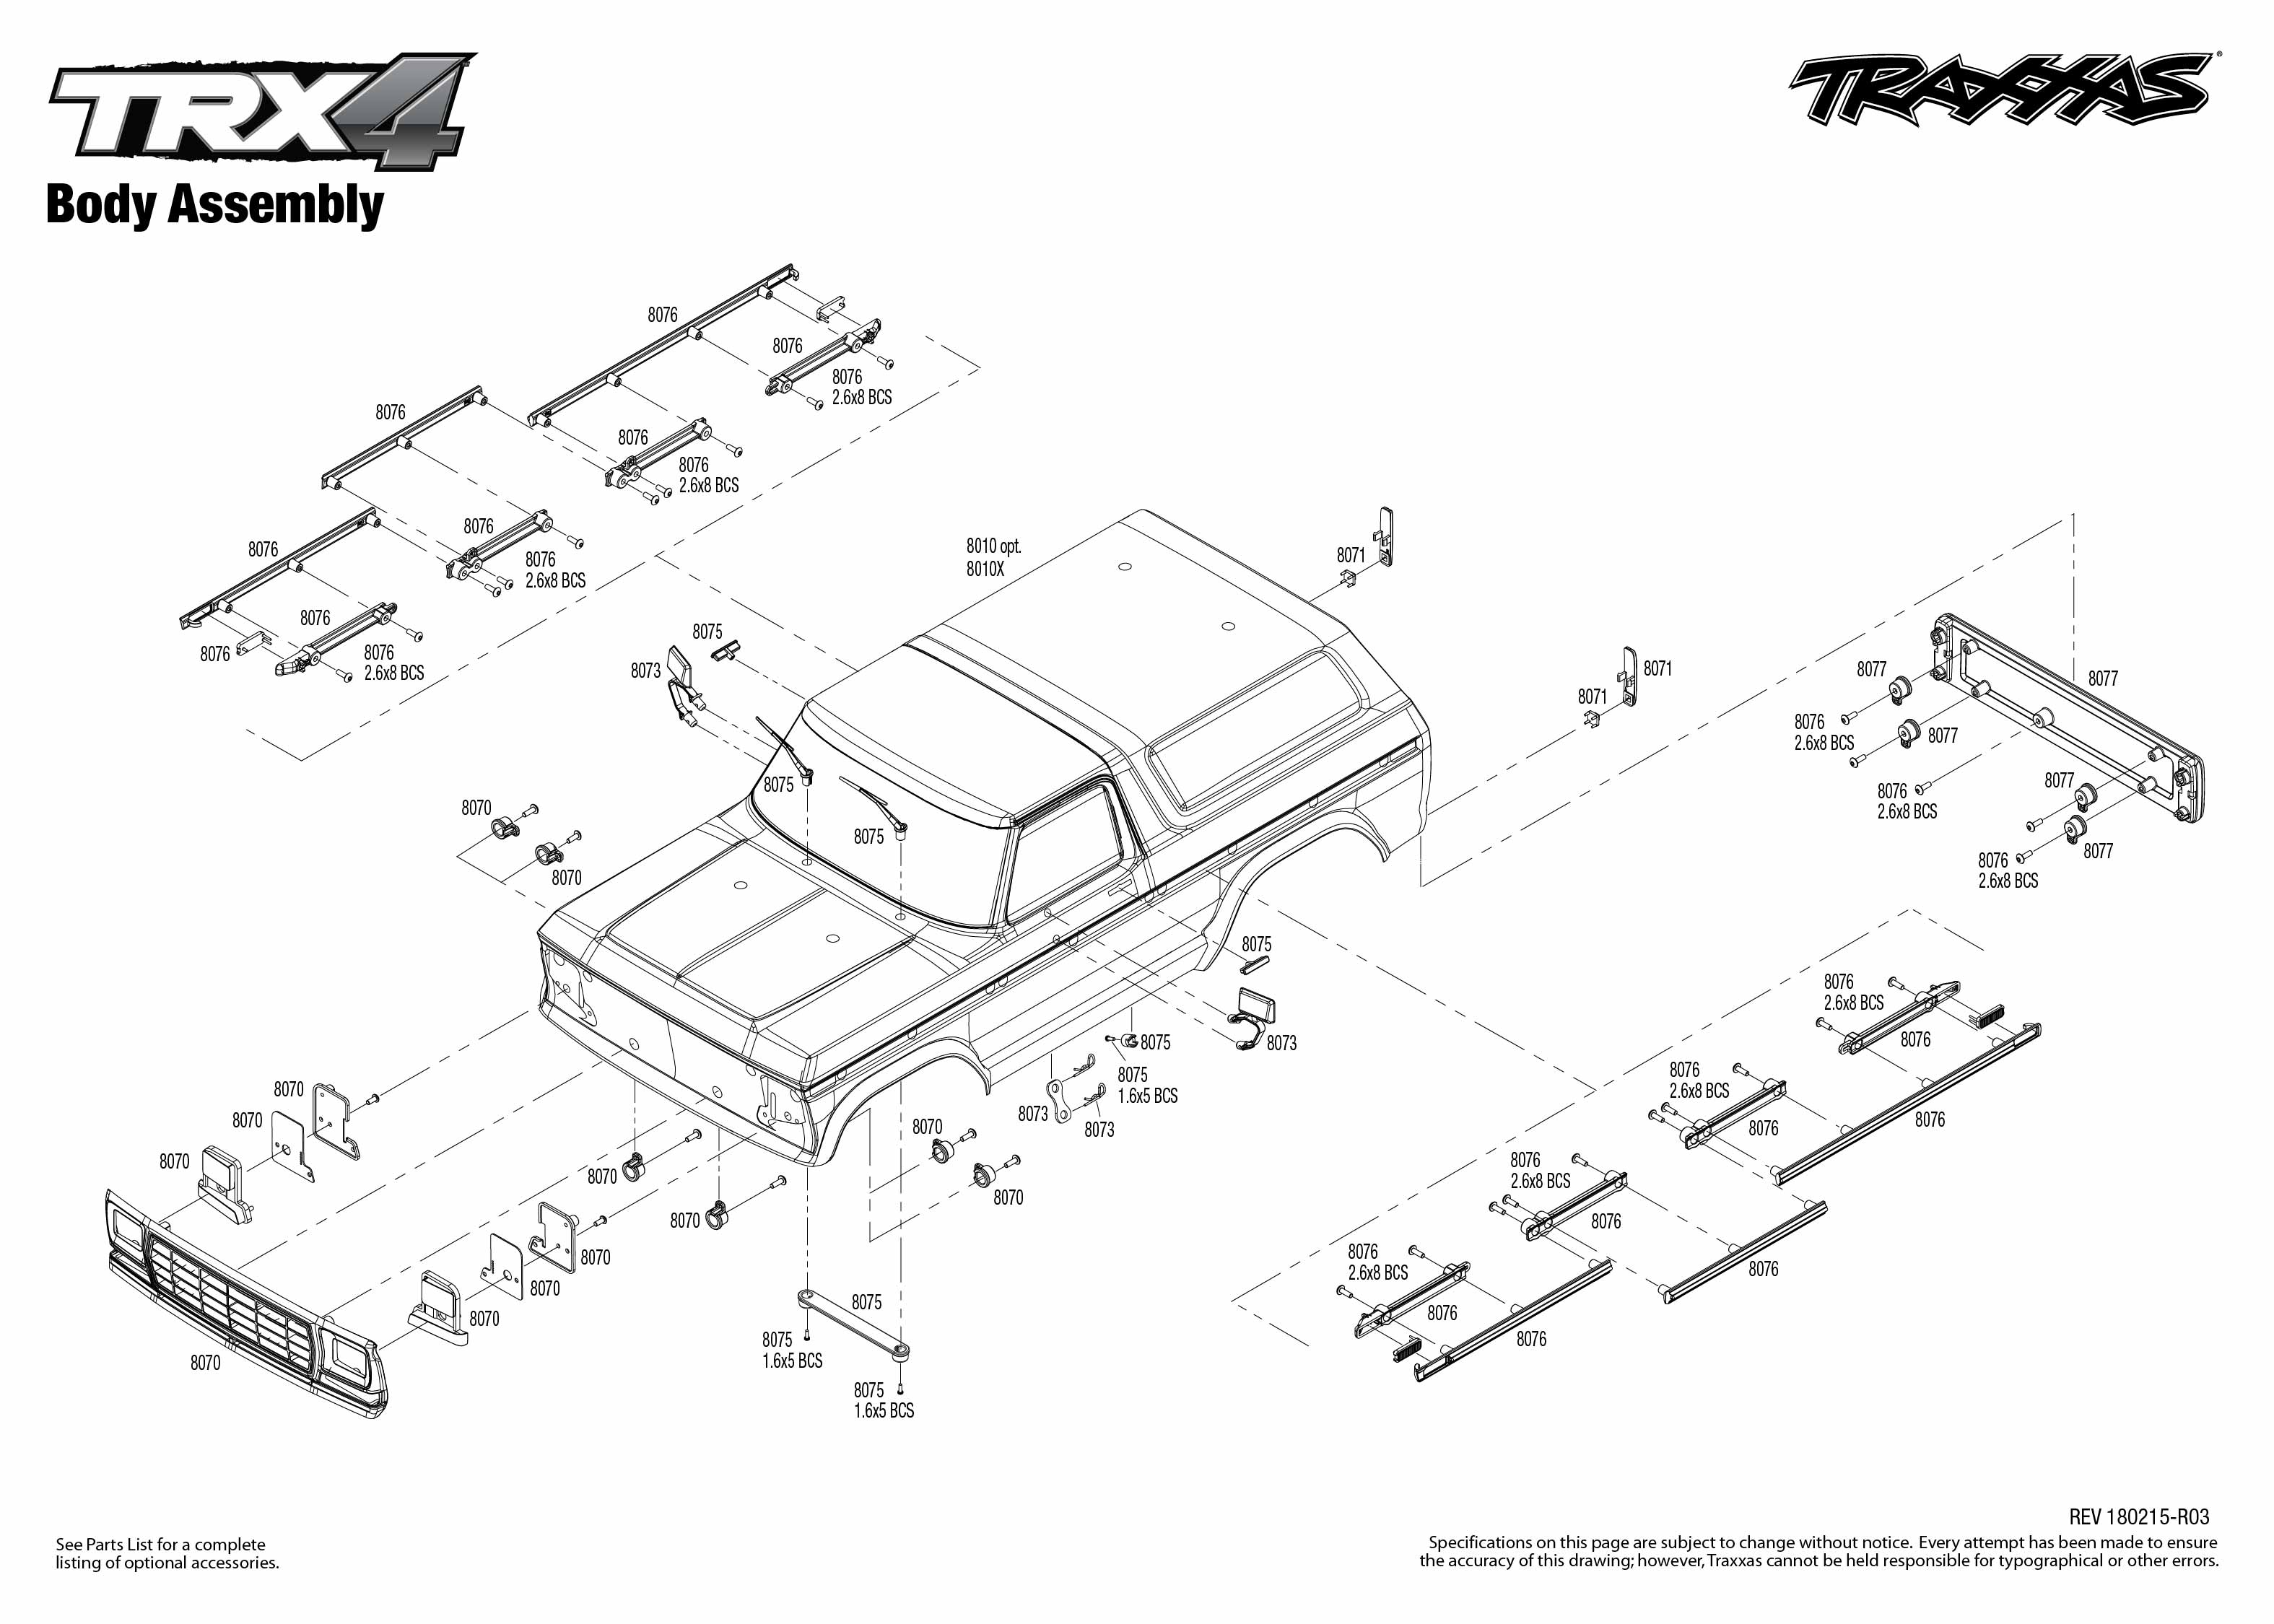 Exploded view: Traxxas TRX-4 Ford Bronco 1:10 TQi RTR - Body